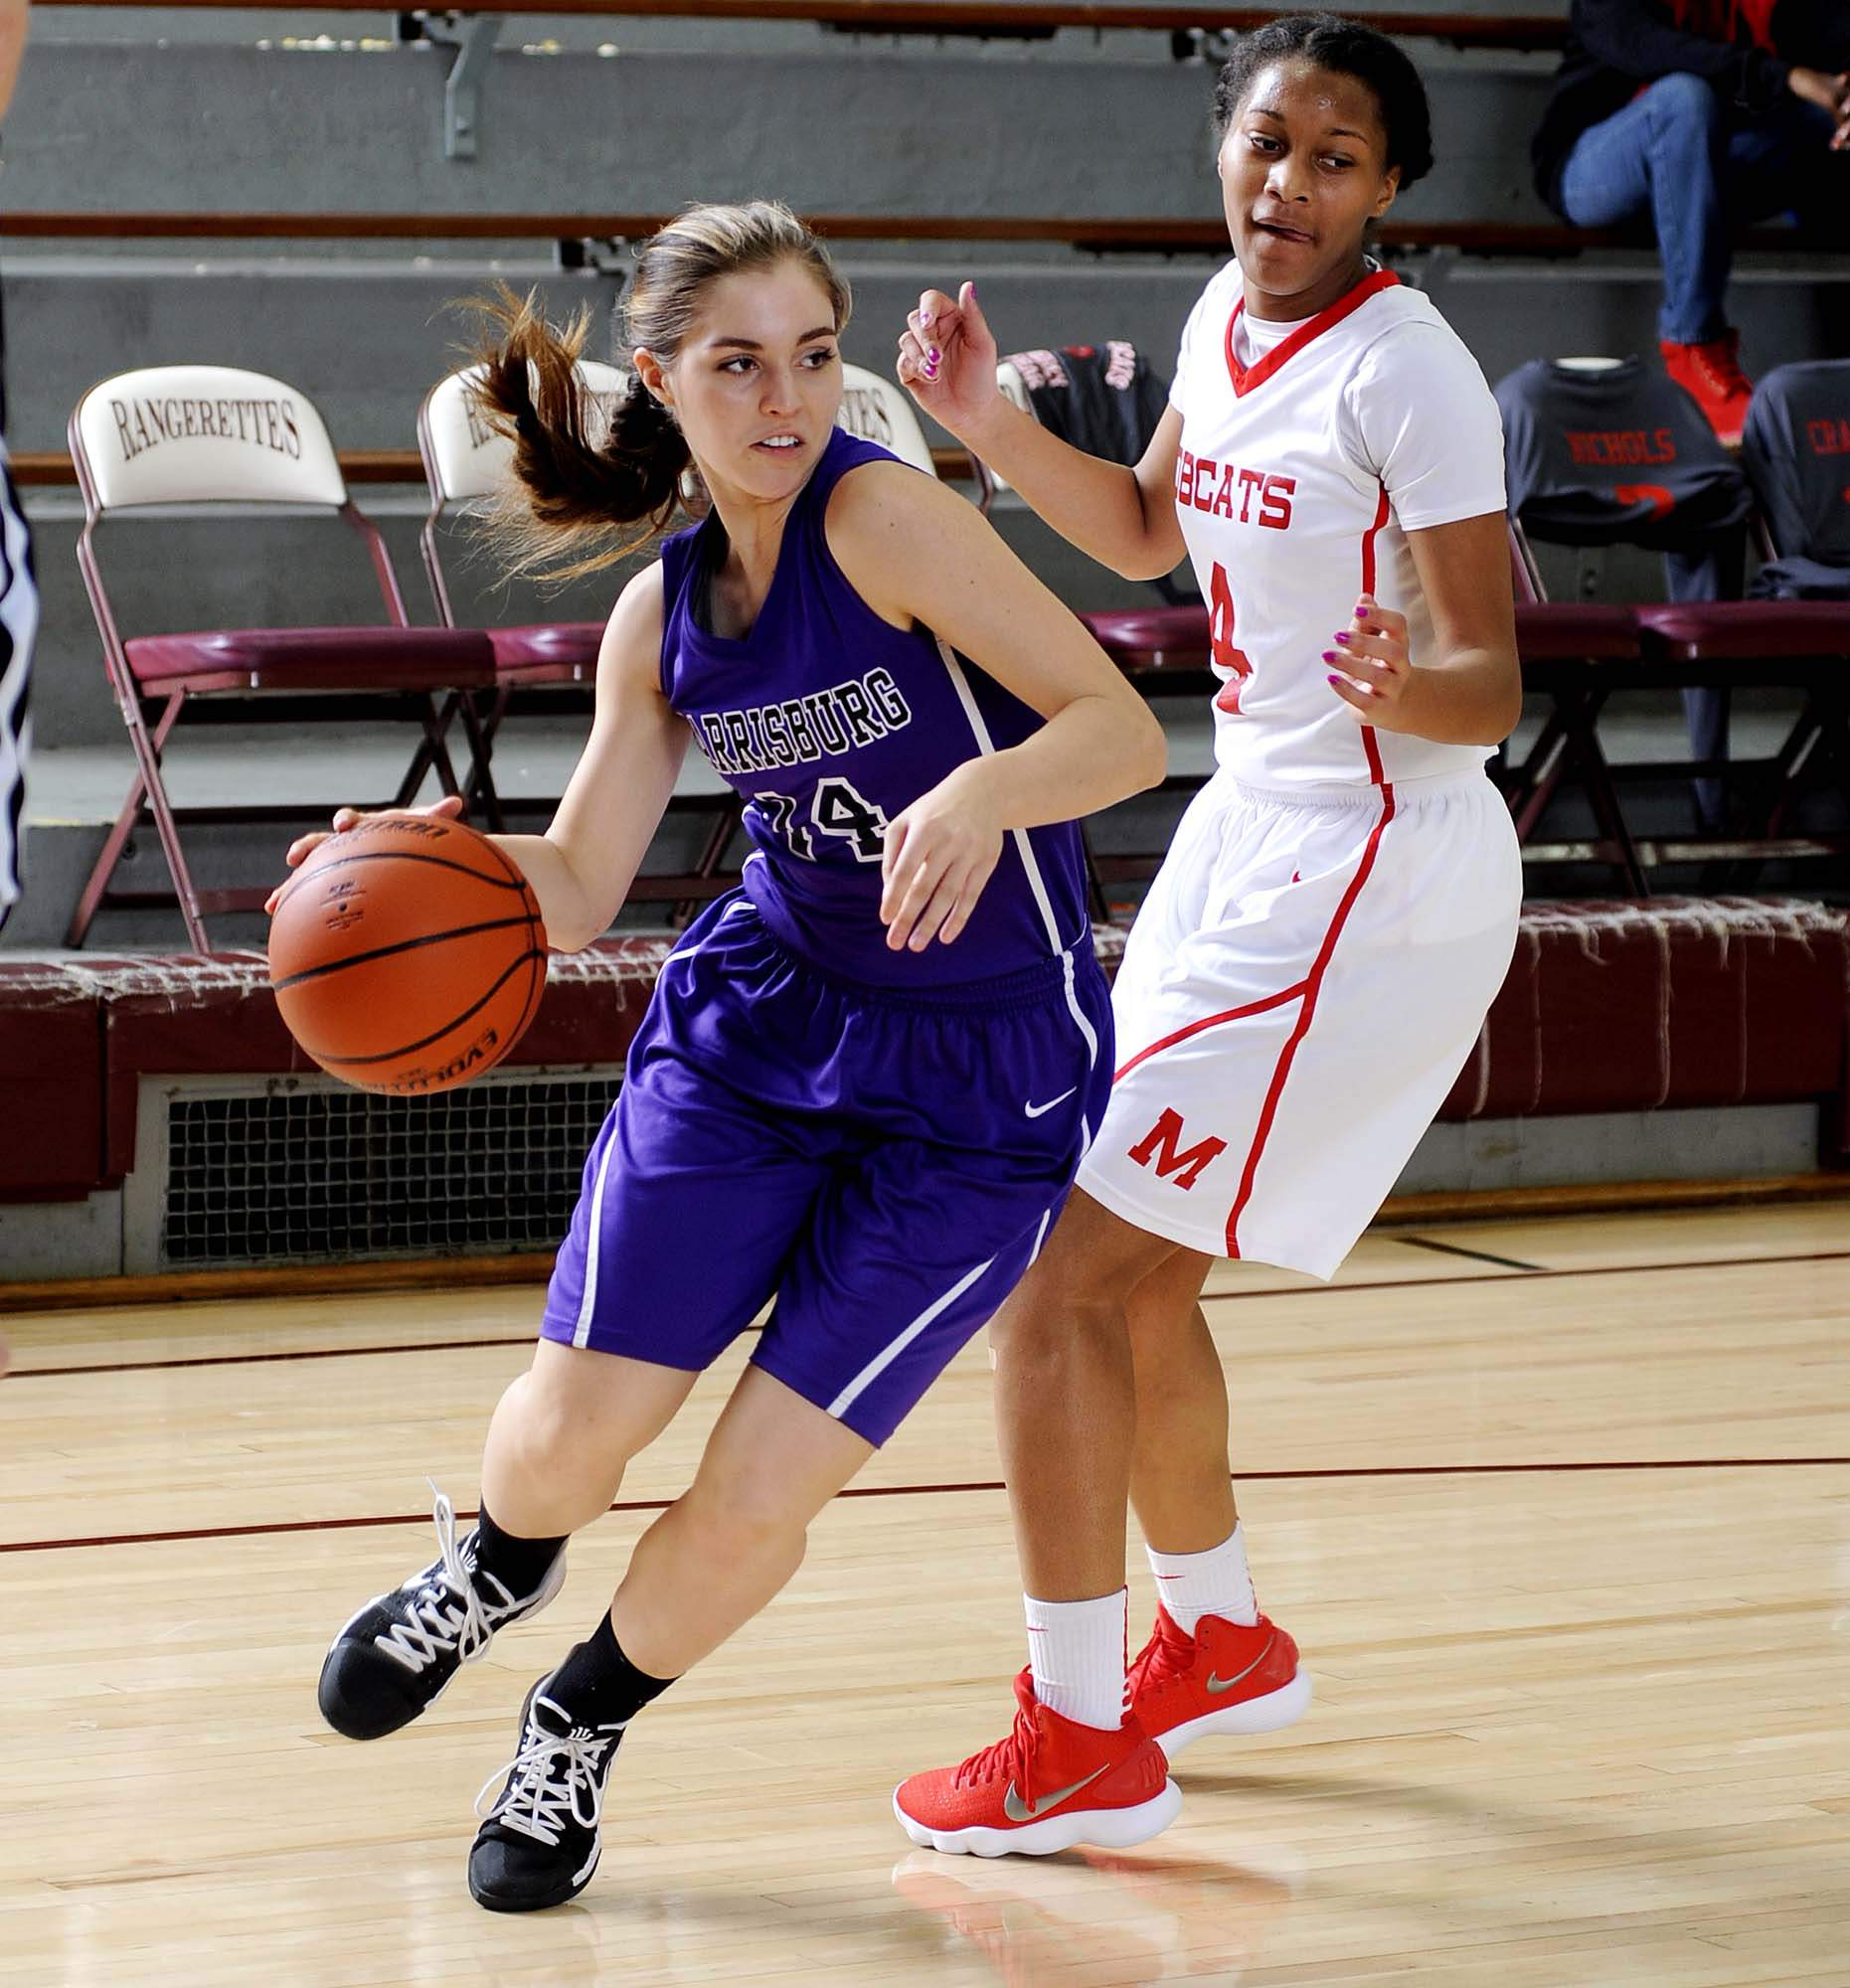 Madeline Rider makes a move around the defender.